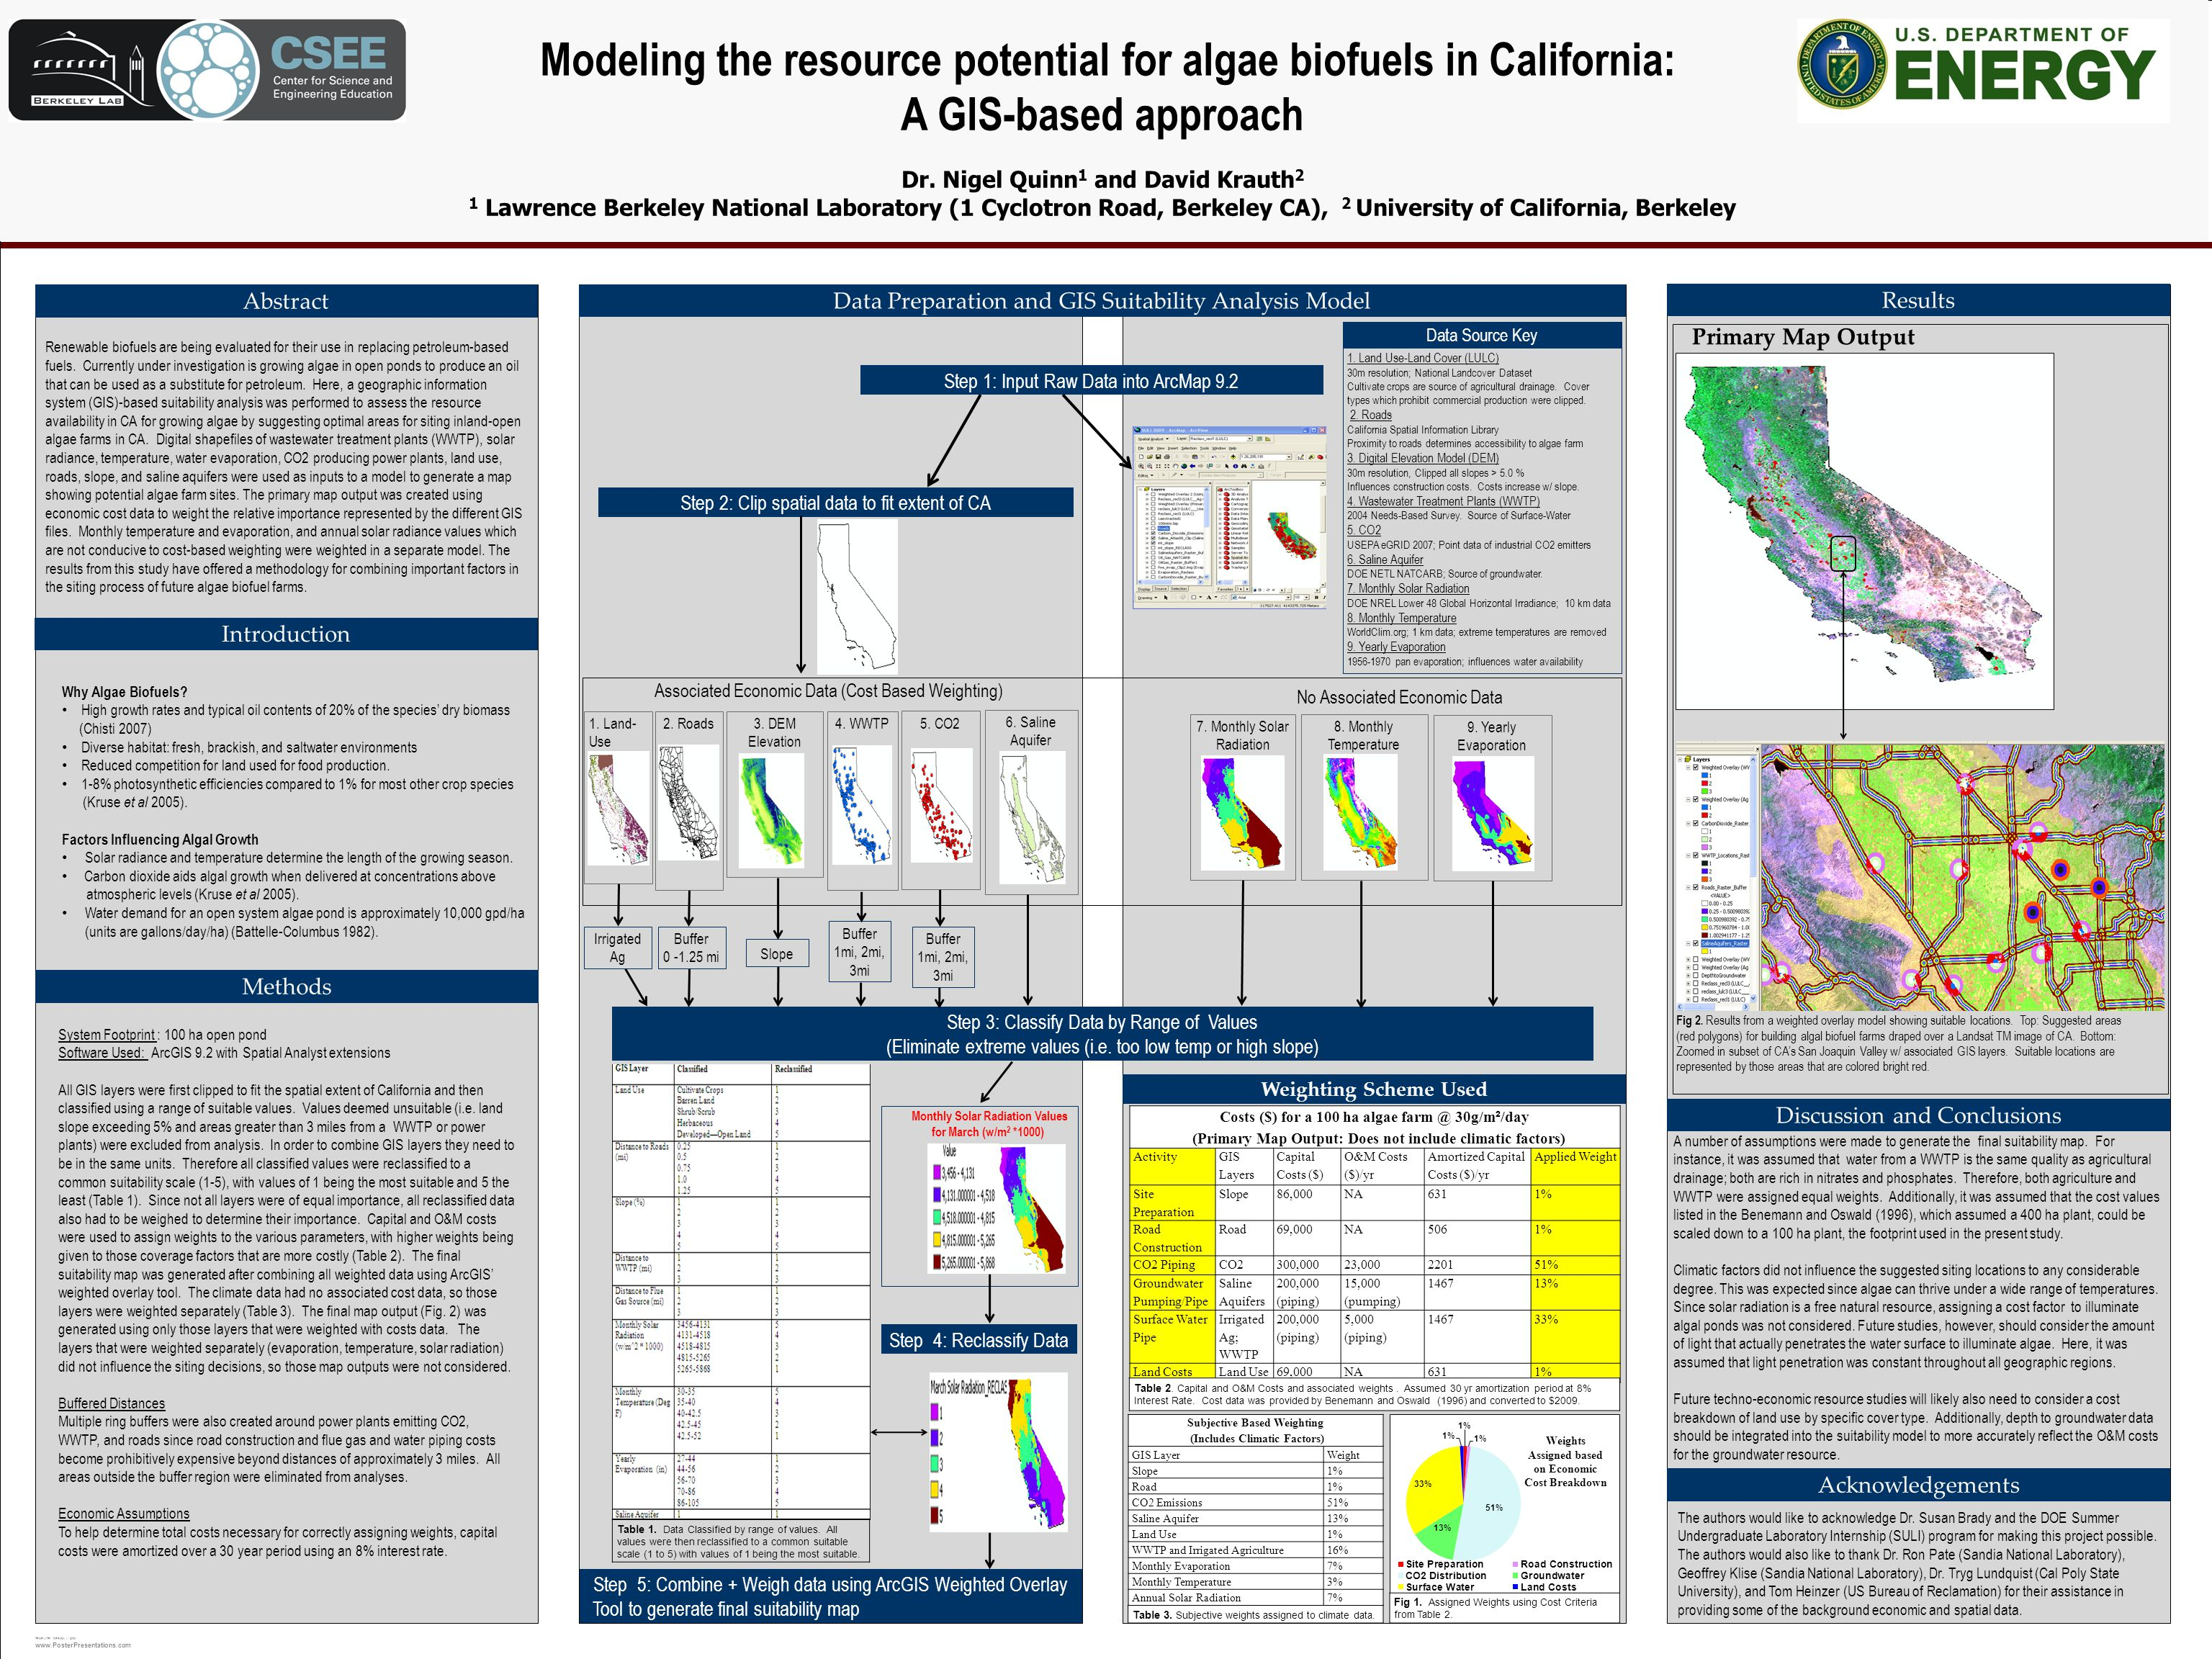 TEMPLATE DESIGN © 2008 www.PosterPresentations.com Modeling the resource potential for algae biofuels in California: A GIS-based approach Dr.